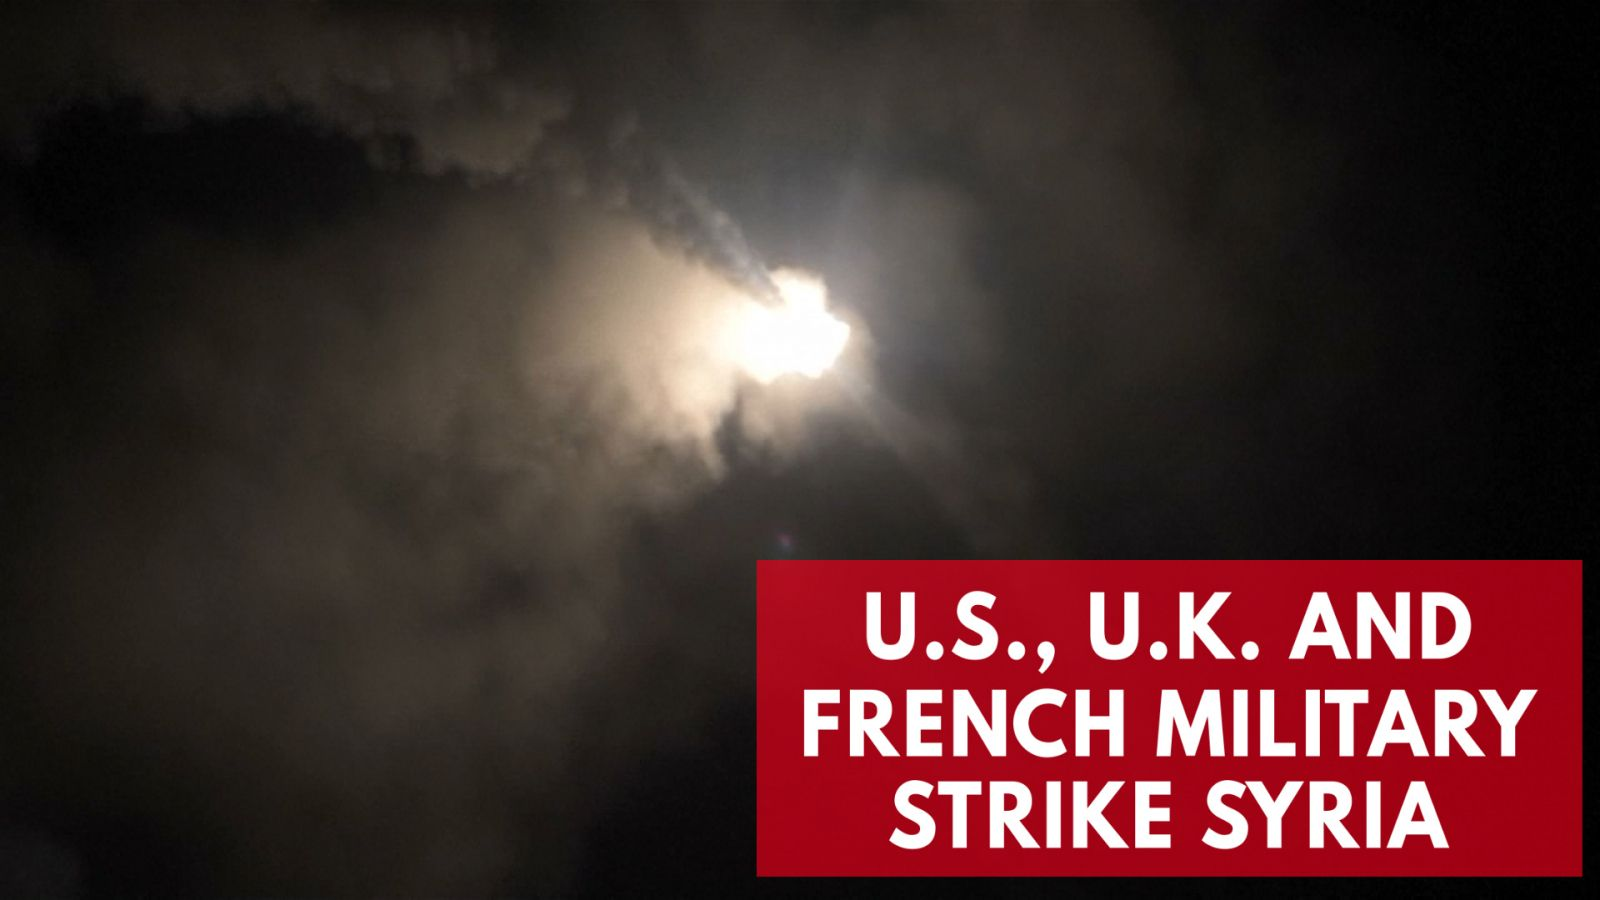 u-s-u-k-and-france-launch-joint-strikes-against-syria